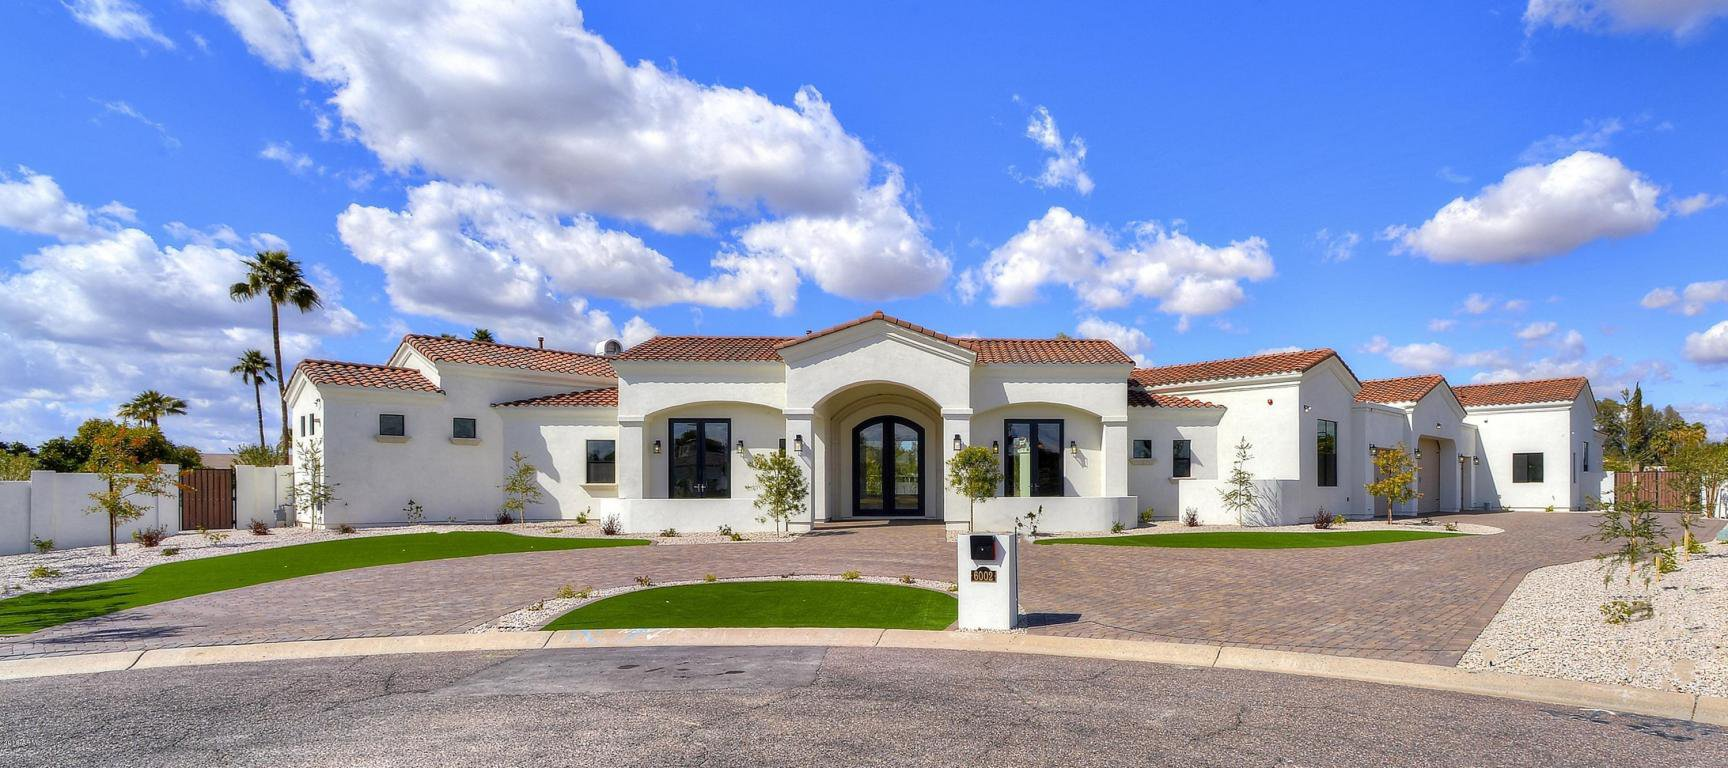 6002 E Onyx Avenue, Paradise Valley 85253